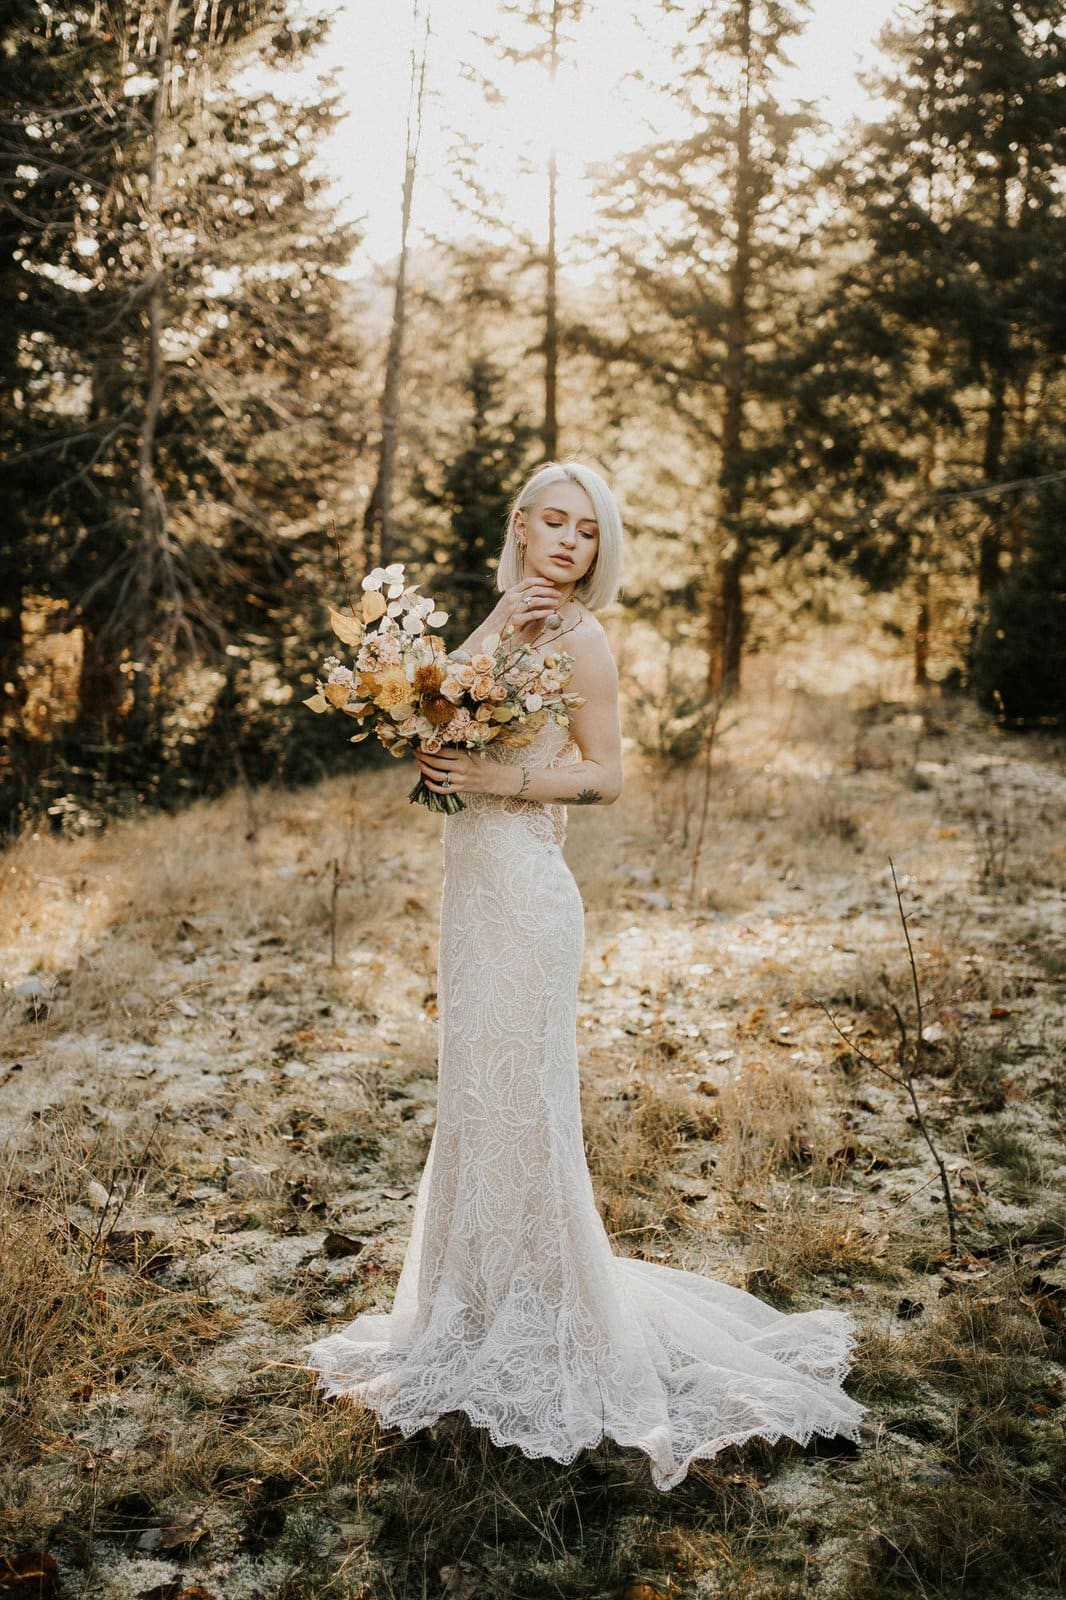 Bride photography for all who wander.